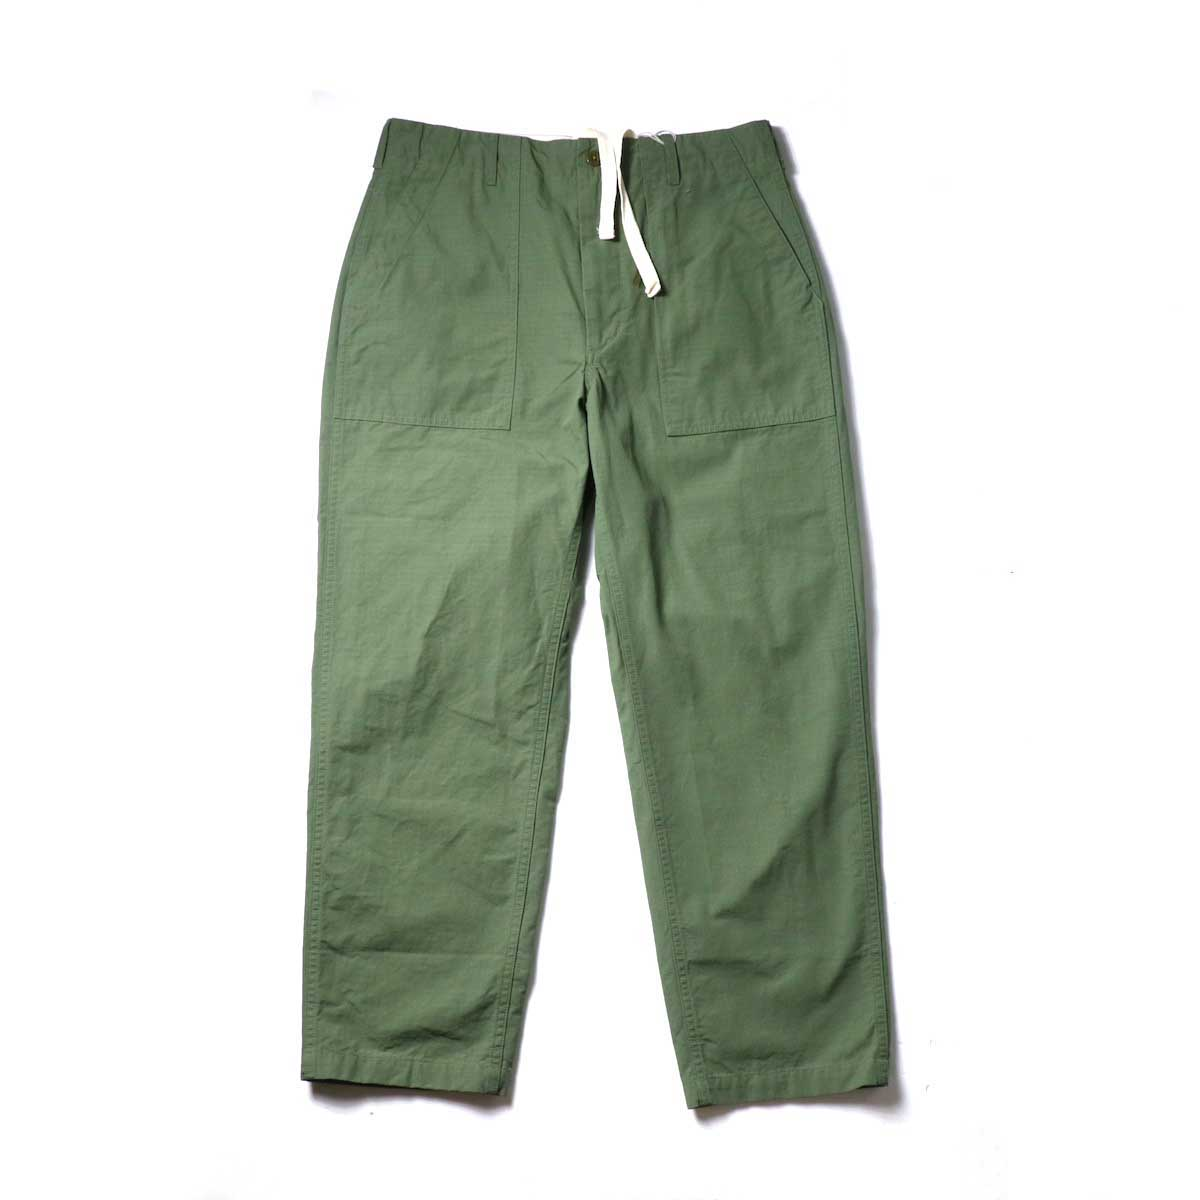 Engineered Garments / Fatigue Pant - Cotton Ripstop (Olive)